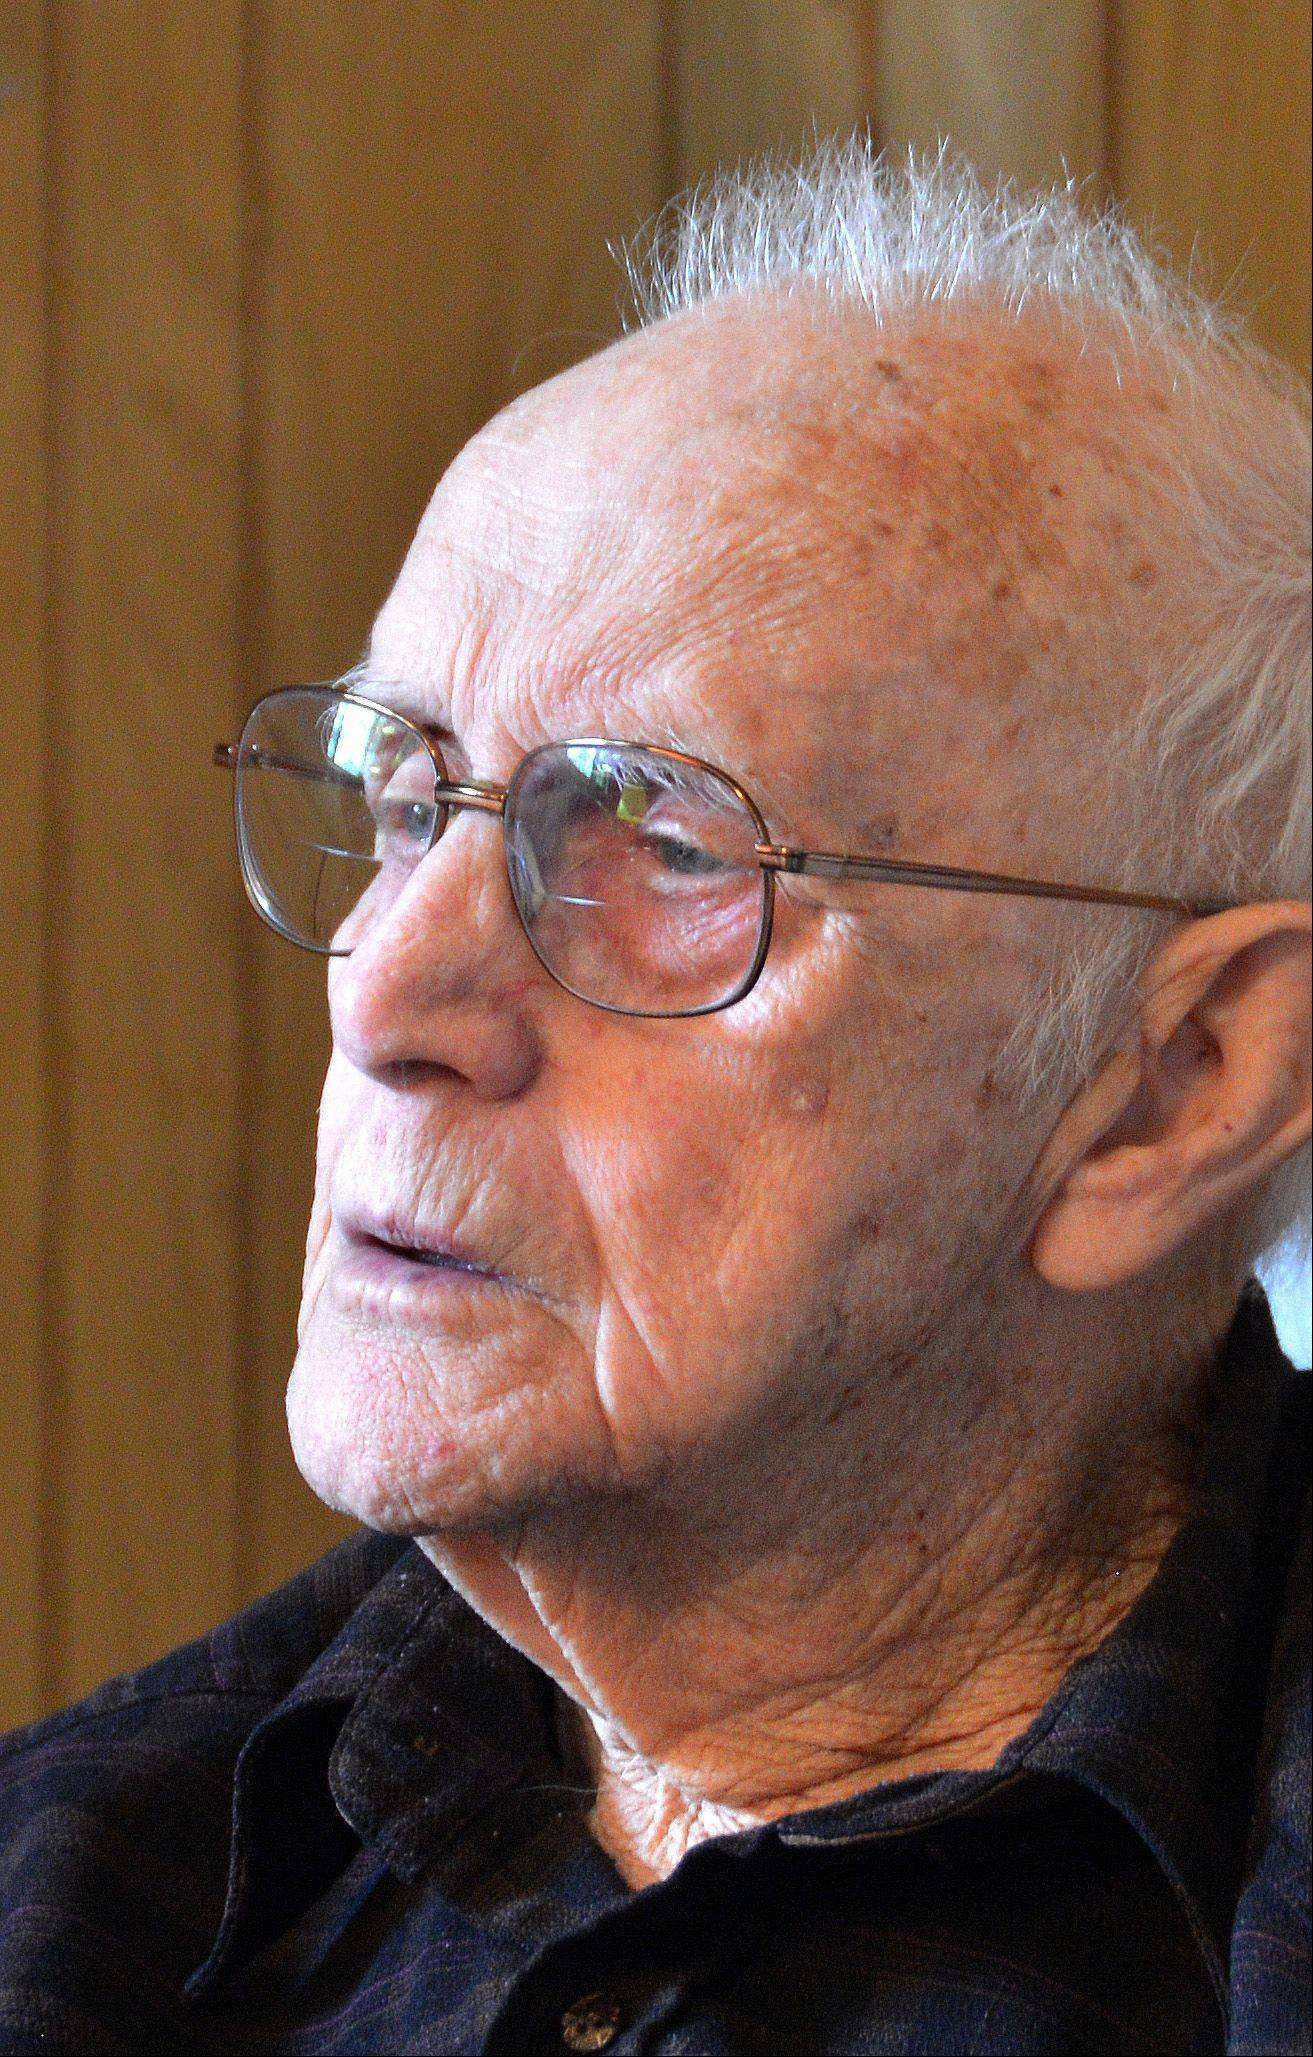 The daily gunfire, winter's cold and summer's stench don't haunt the memories of Korean War veteran Virgil Banker as much as the throngs of helpless refugees he saw devastated by the war.